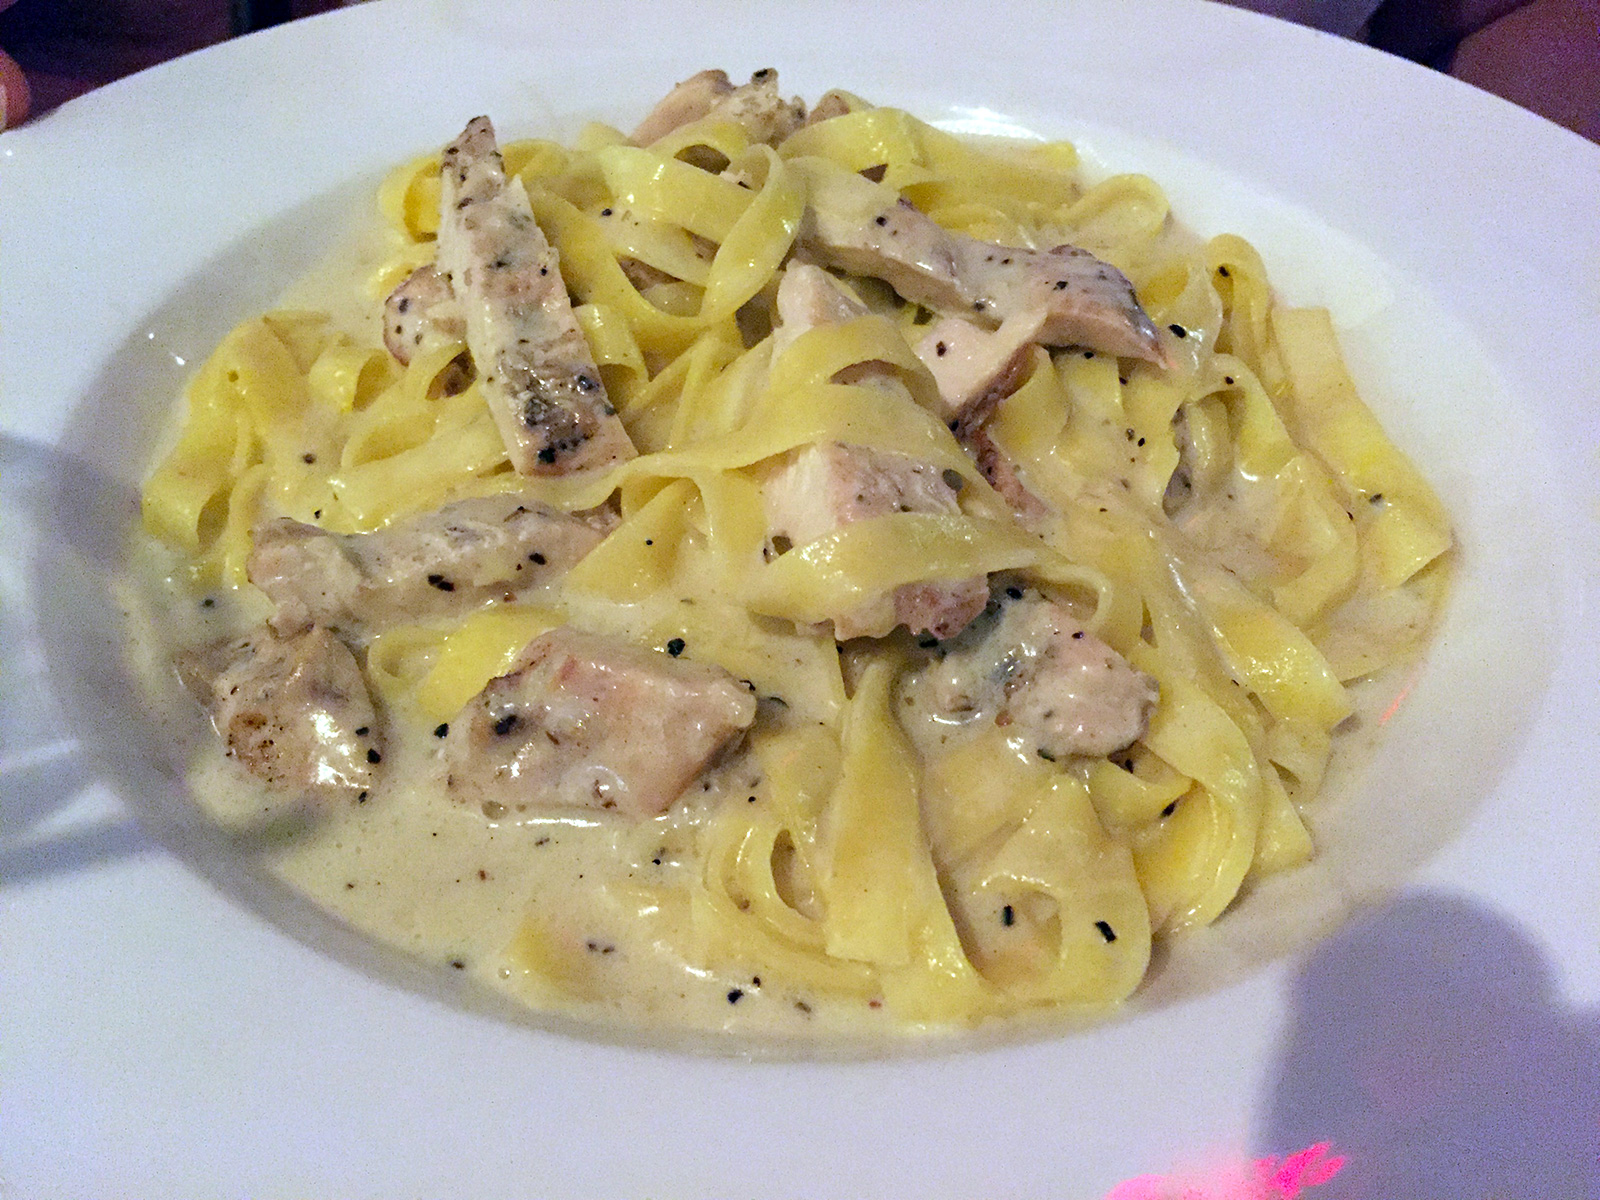 Frankie's Italian Trattoria in Maggie Valley, NC by Jets Like Taxis